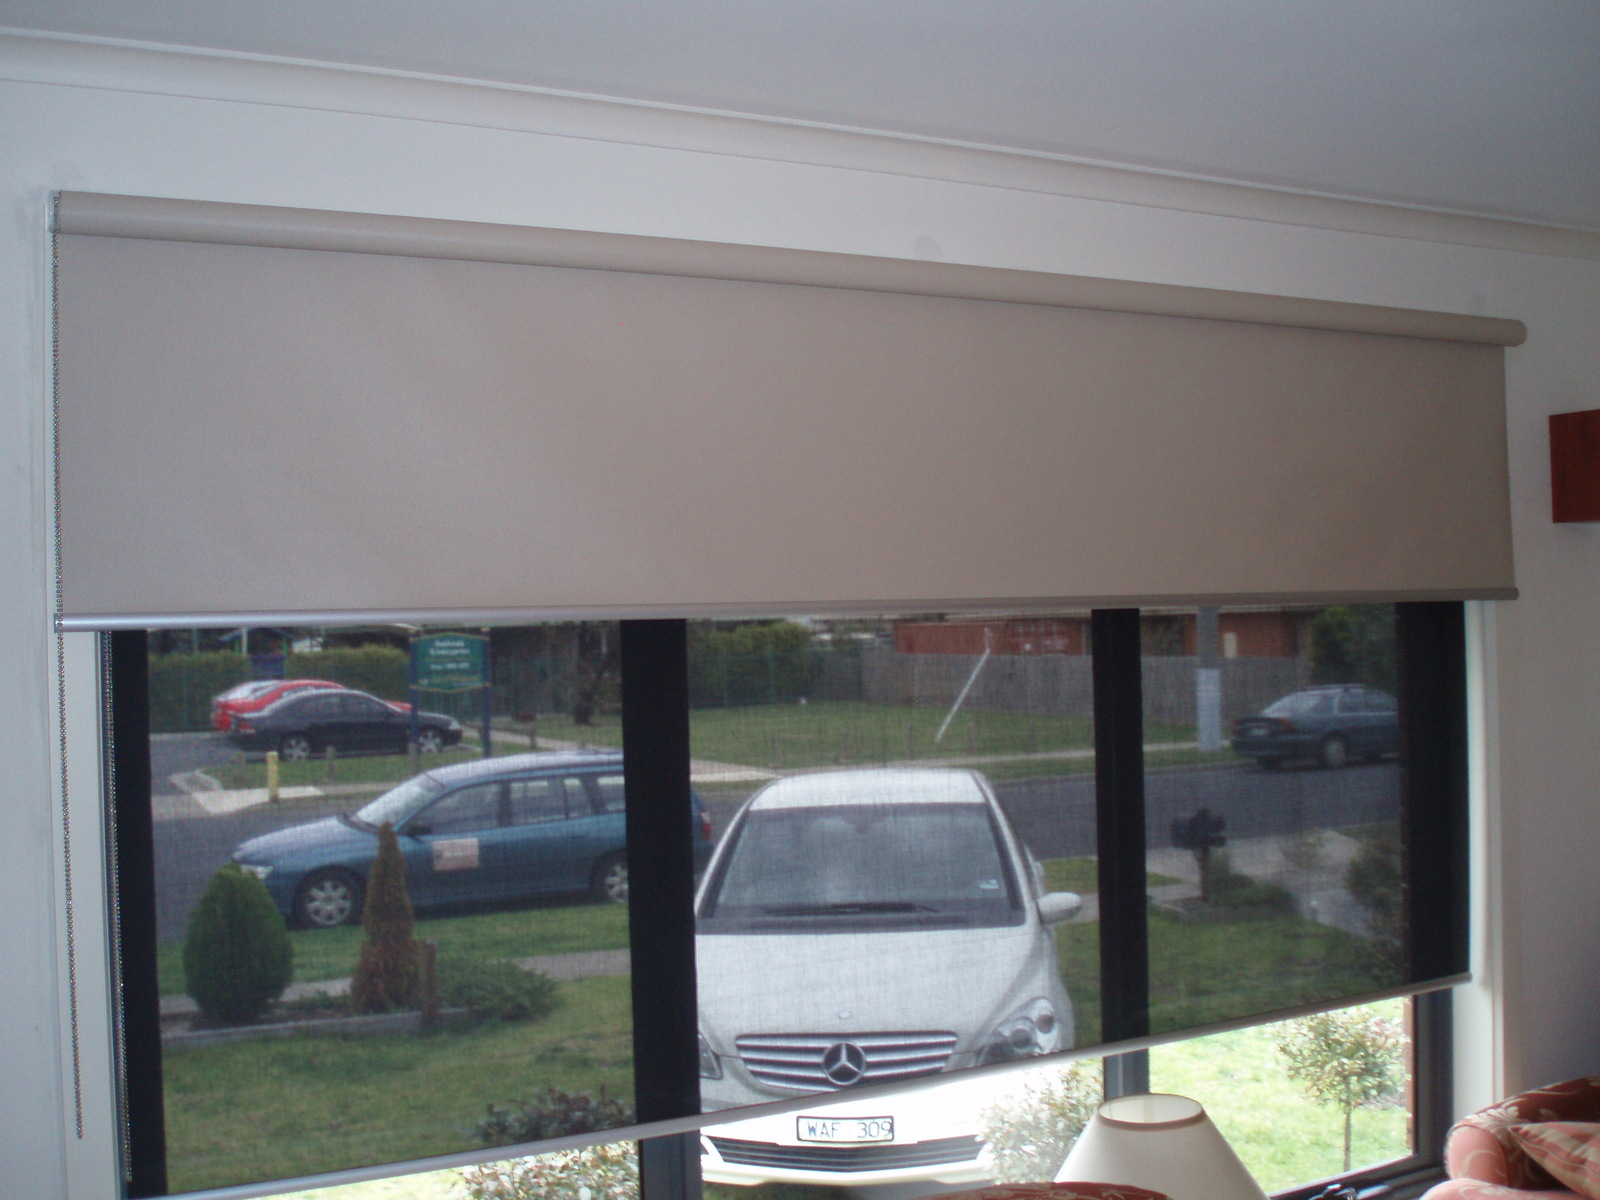 Roller Blinds Online Screen: Into Blinds Online Melbourne, Screen ...